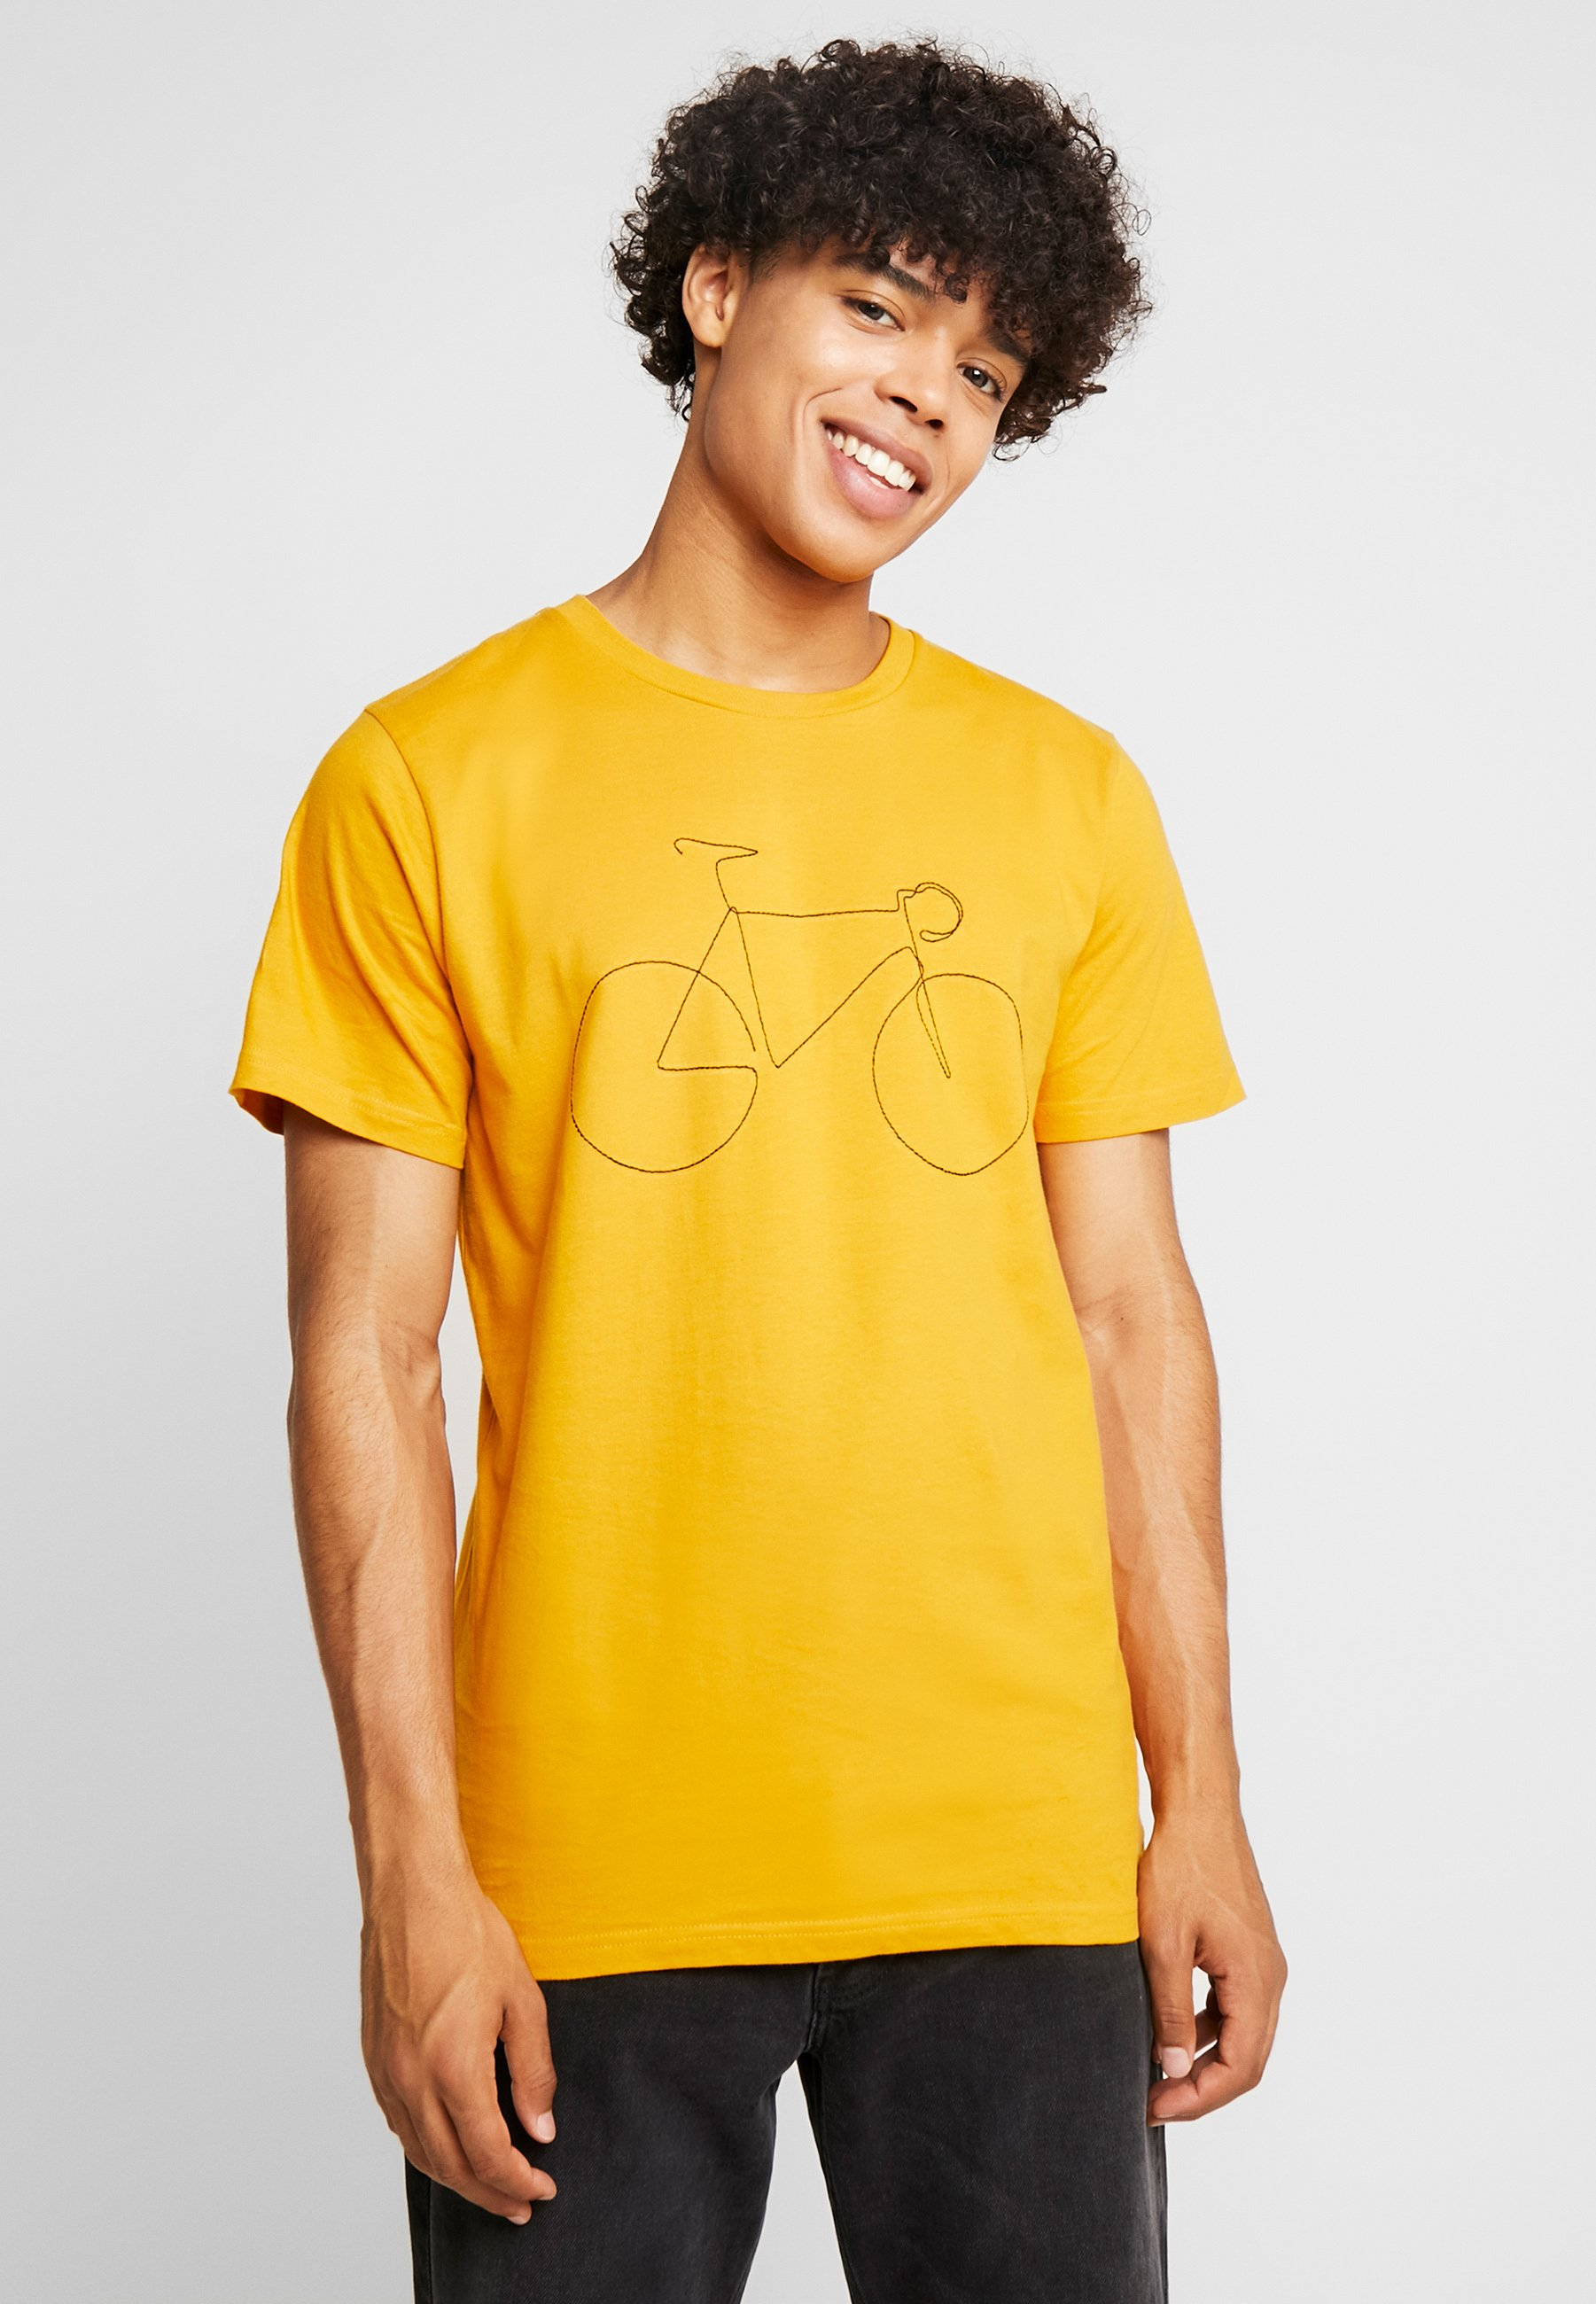 Stampa Mustard BicycleT Dedicated shirt Con Stockholm ZkXuOPTi